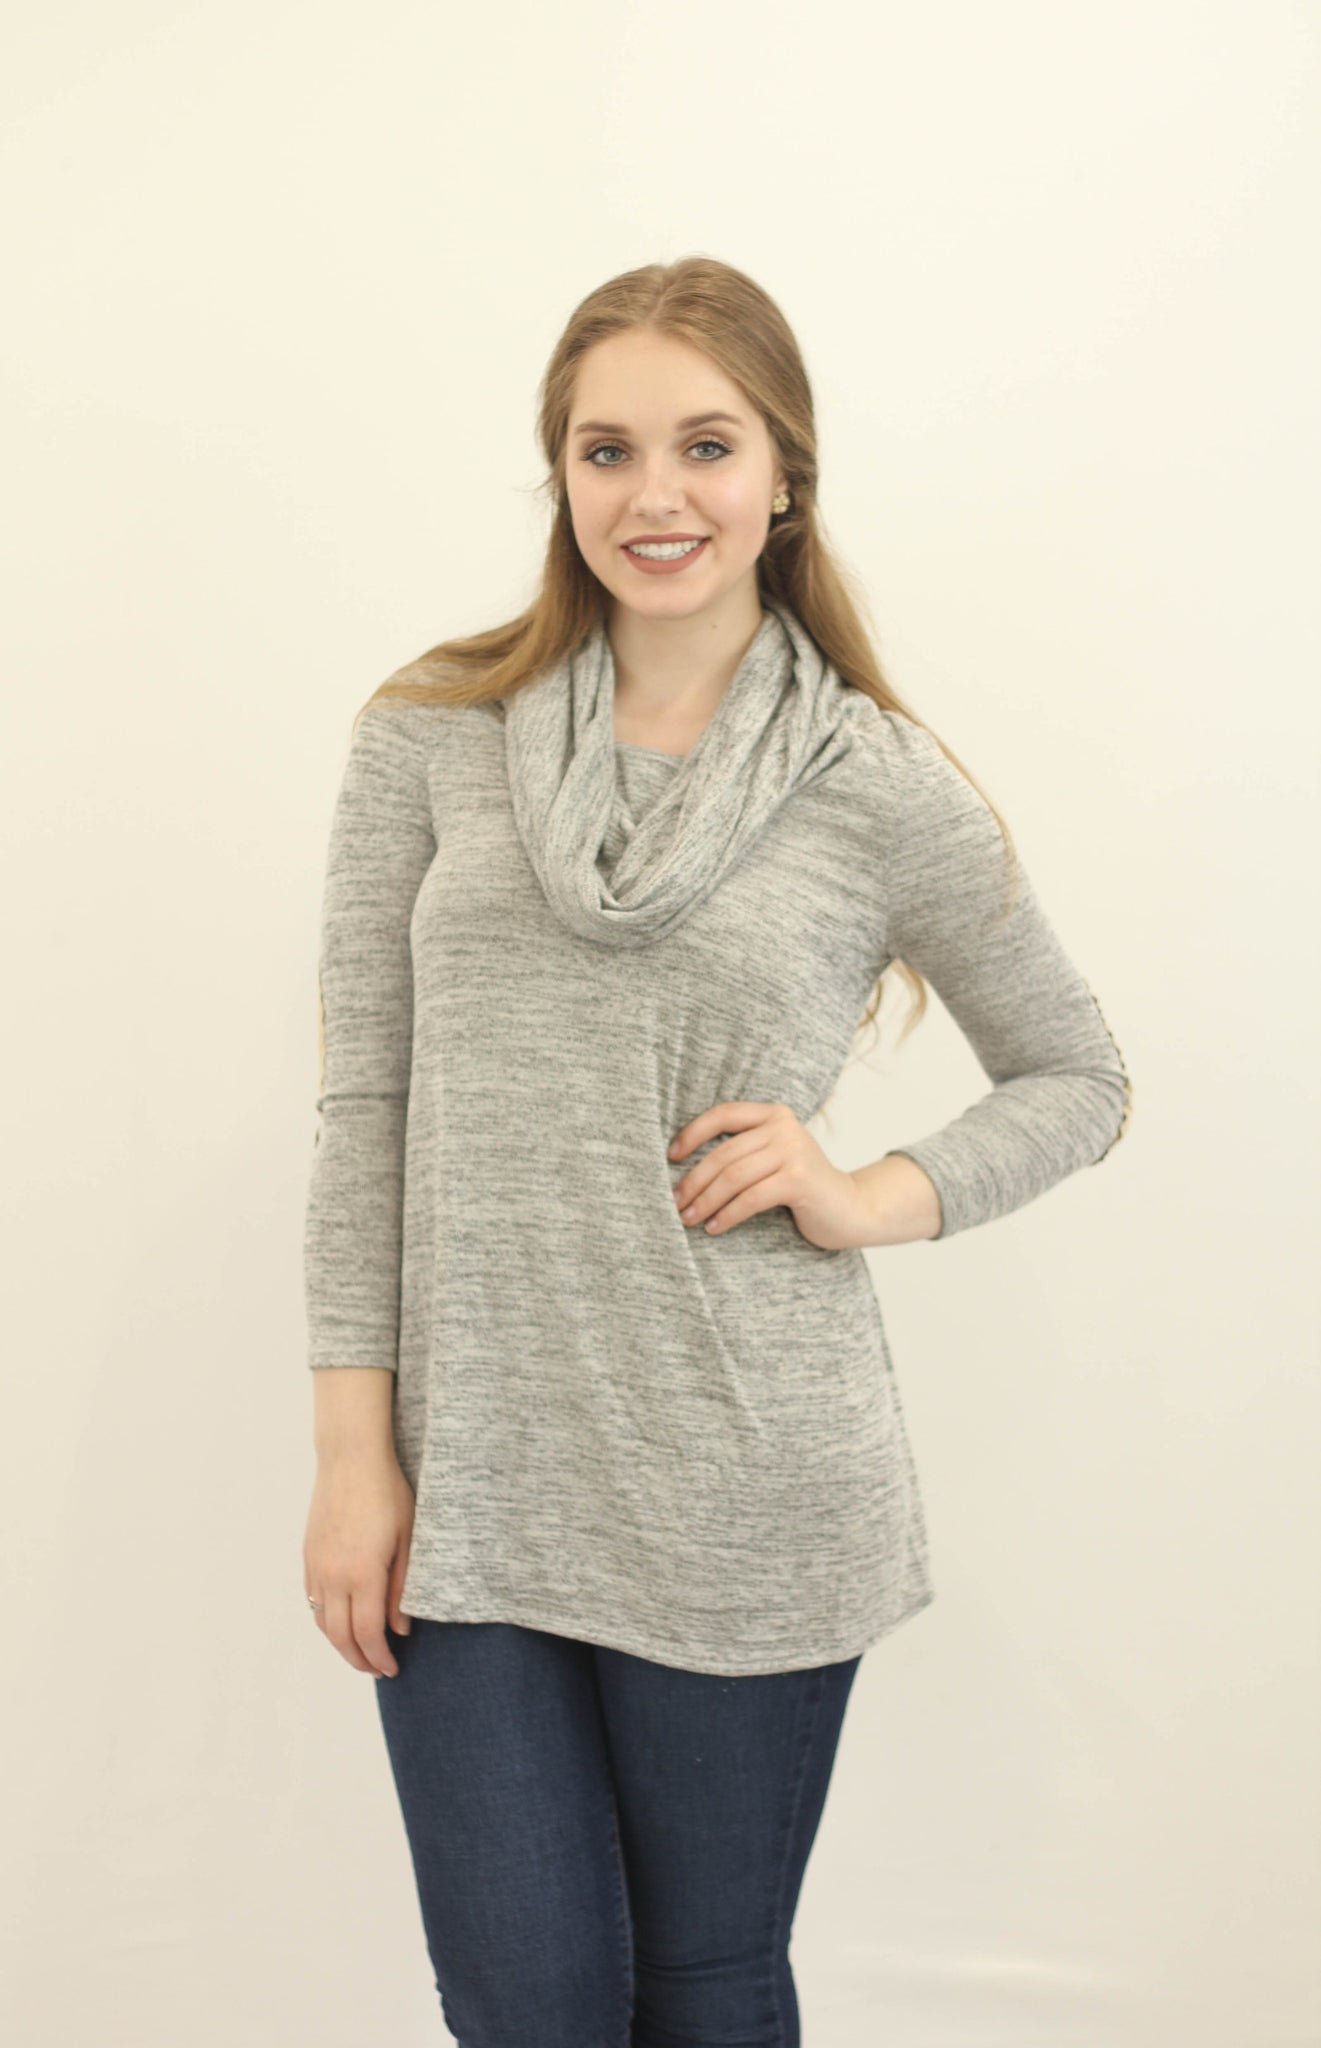 Cowl Neck Elbow Patch Sweater